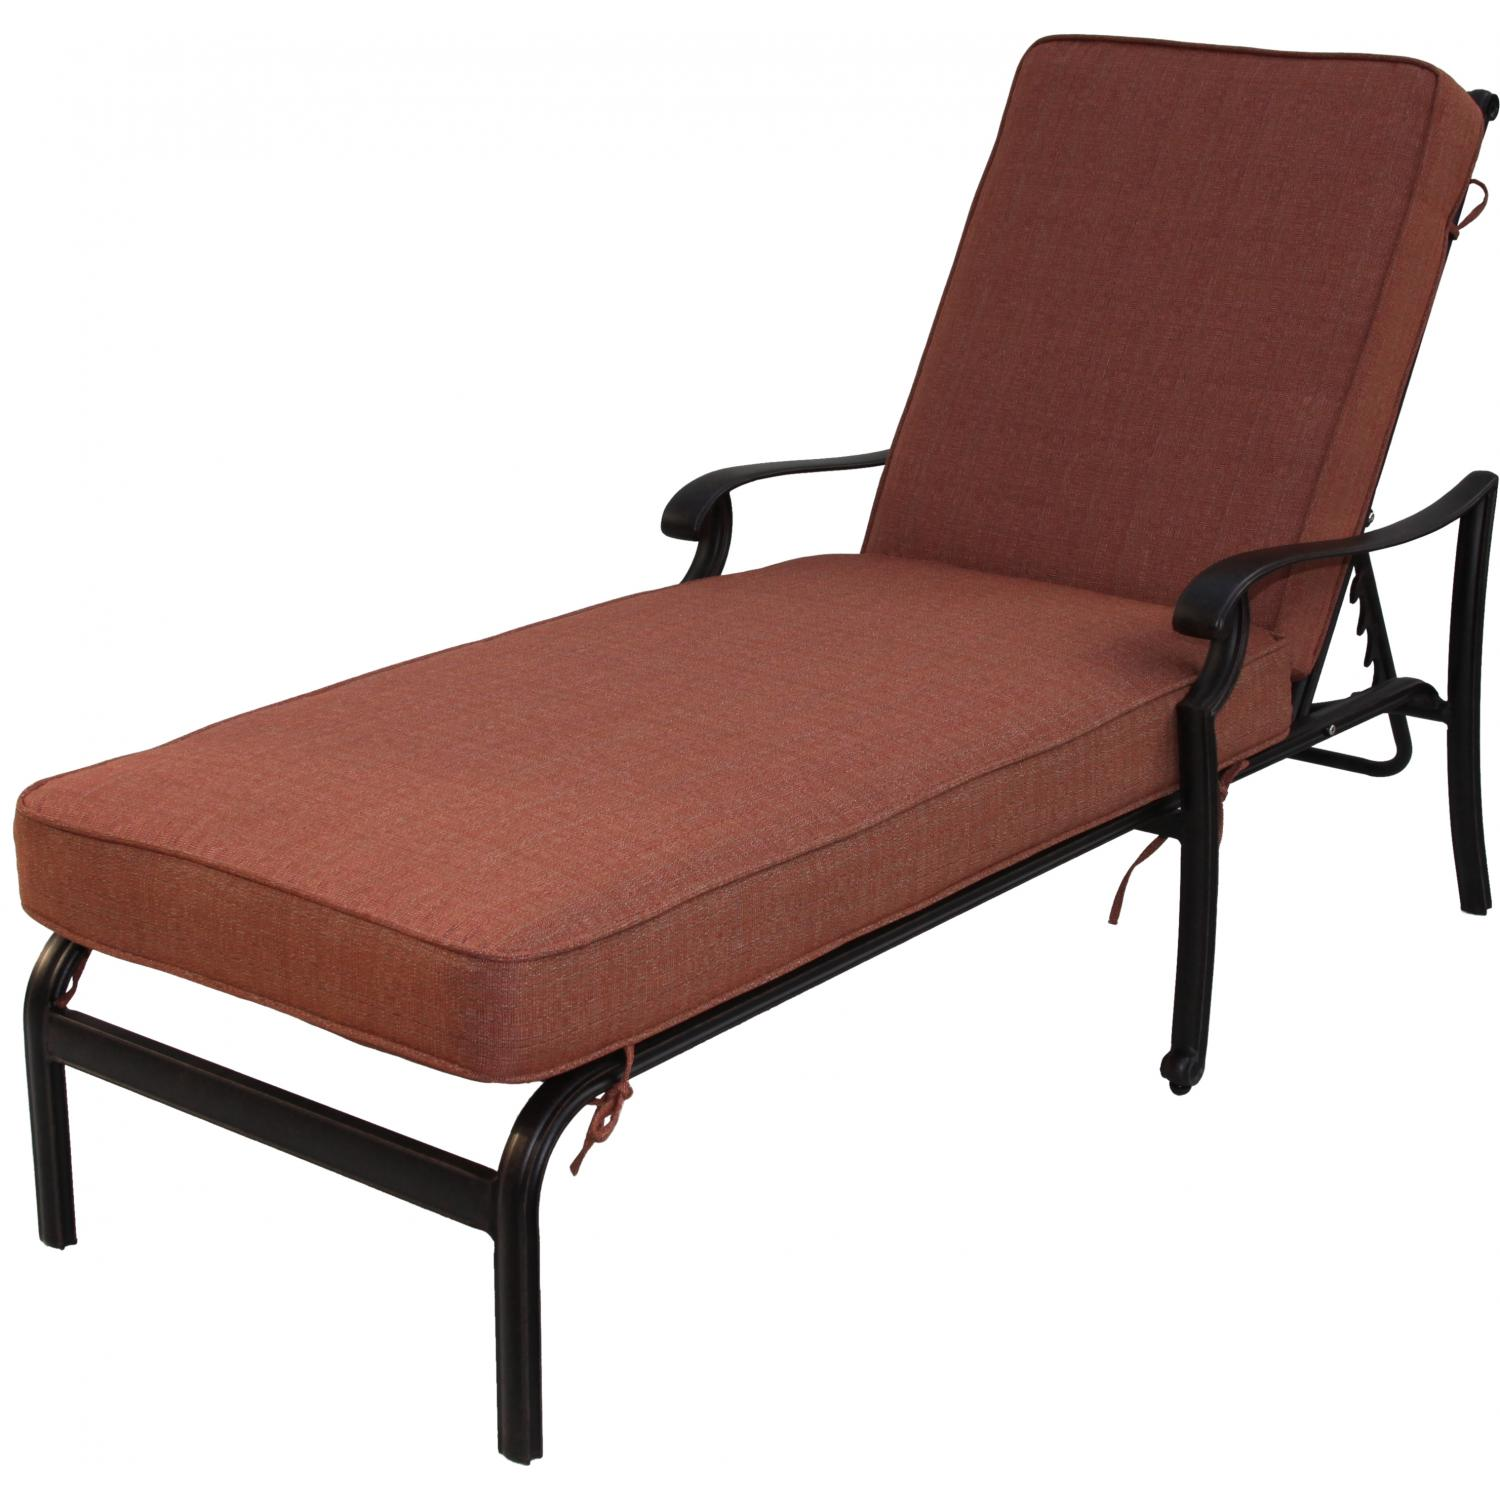 Darlee St Cruz Cast Aluminum Patio Chaise Lounge Antique Bronze